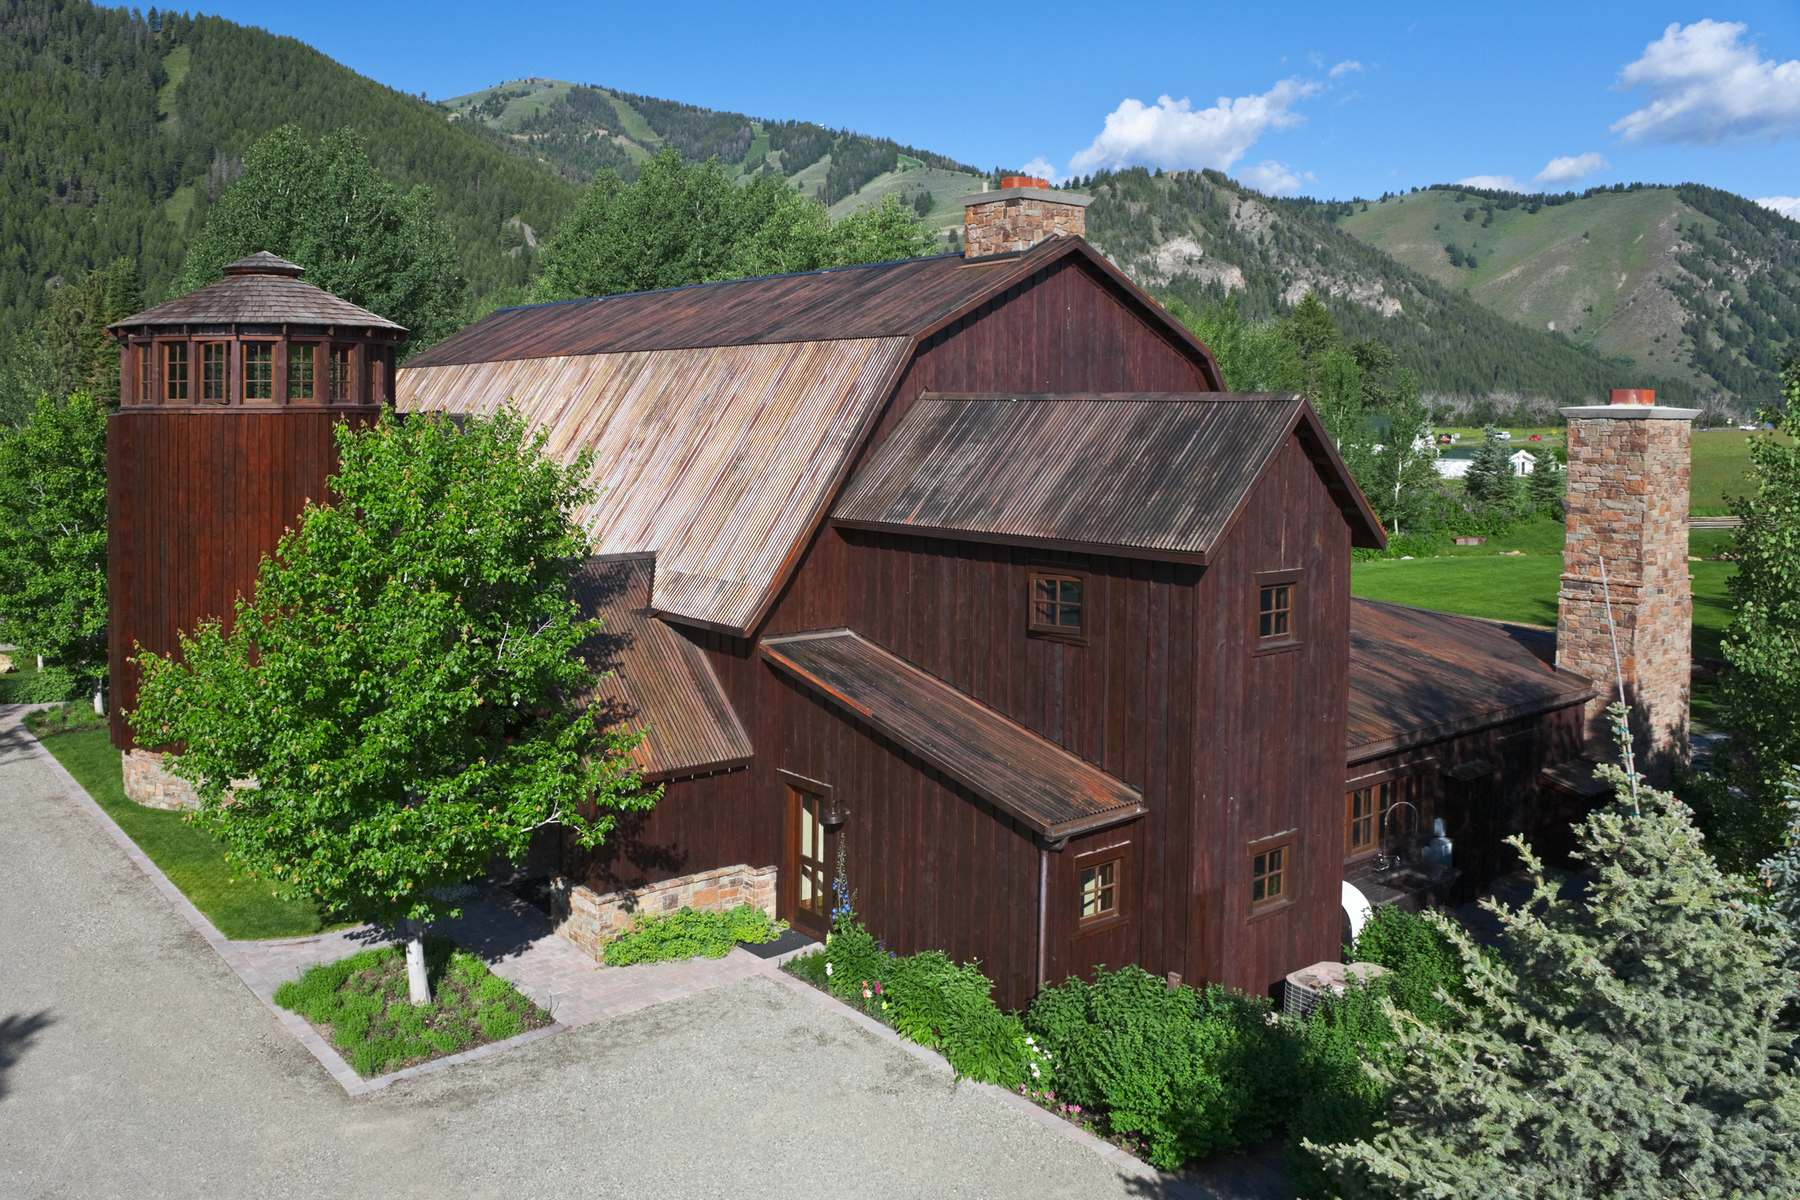 Single Family Home for Active at Sun Valley's Historic Western Family Compound 105 Farnlun Place Sun Valley, Idaho 83353 United States